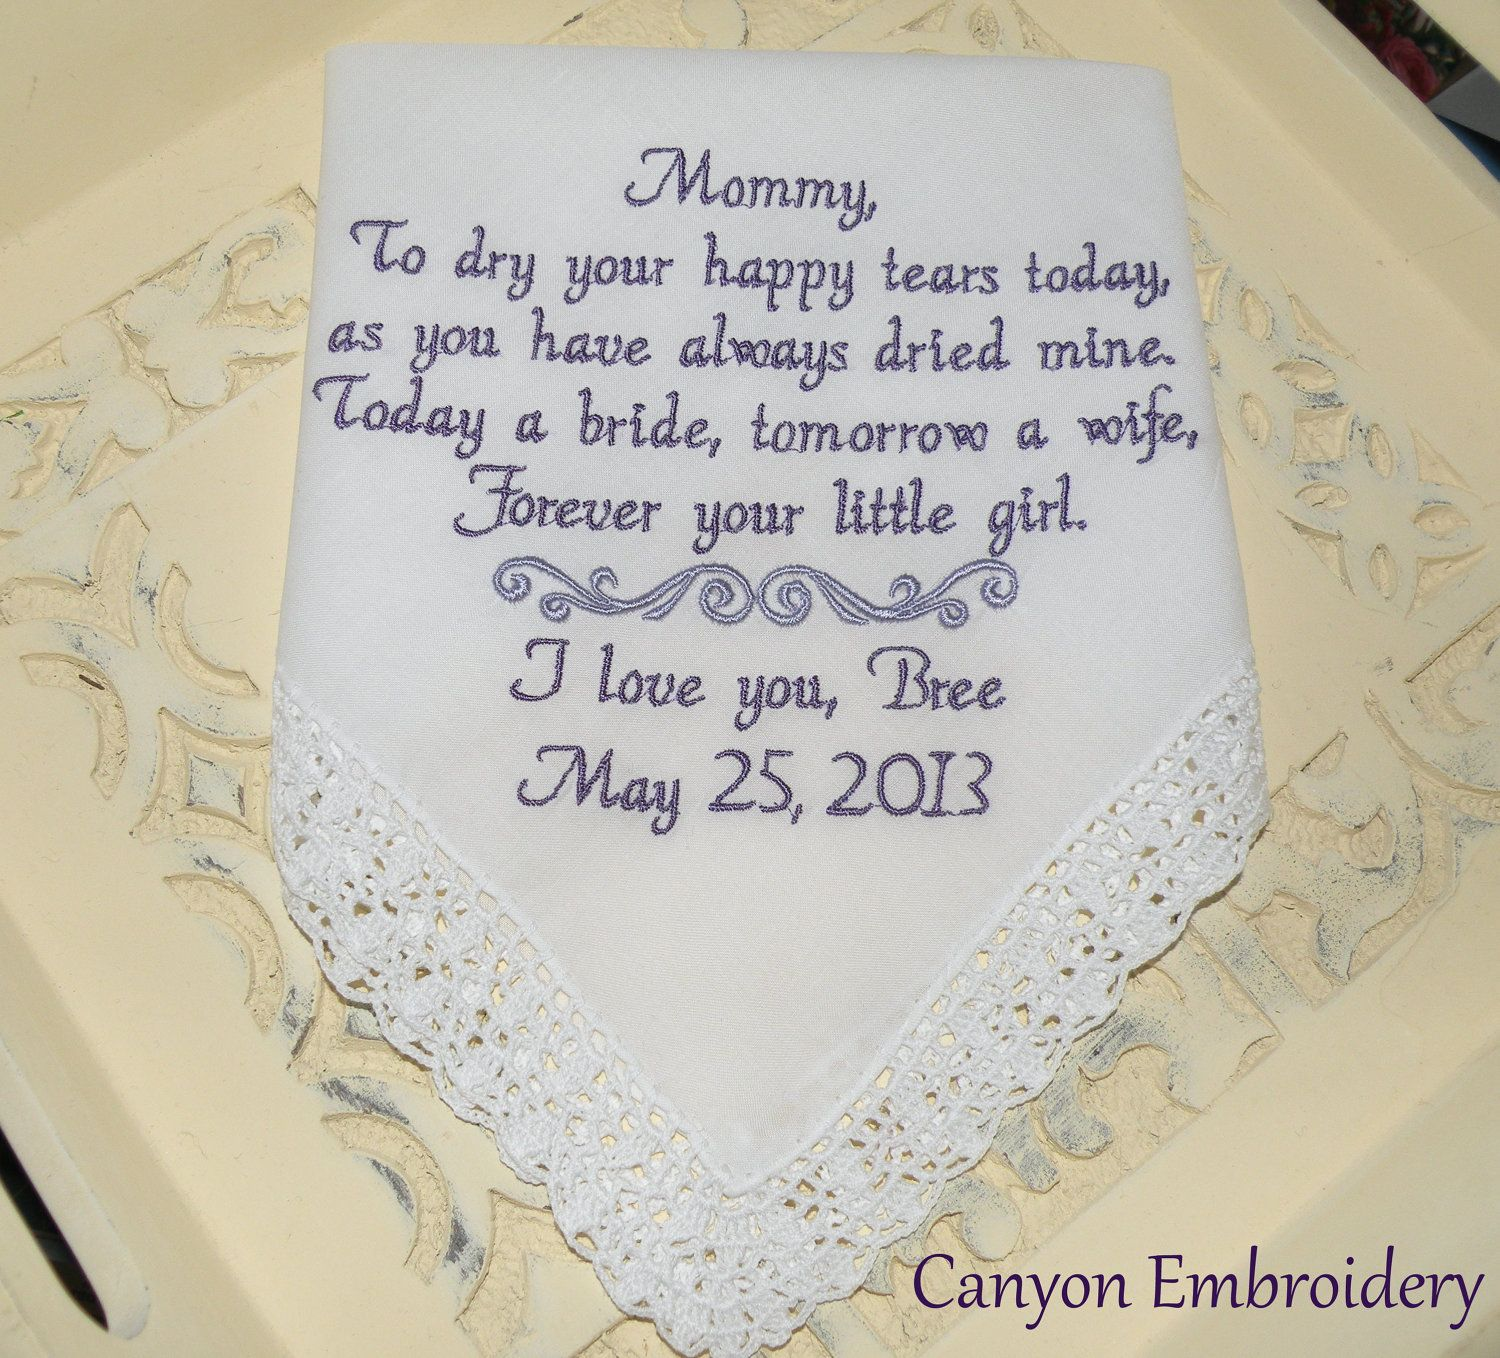 Gift For My Bride On Wedding Day: MOTHER OF The BRIDE, To Dry Your Happy Tears, Personalized